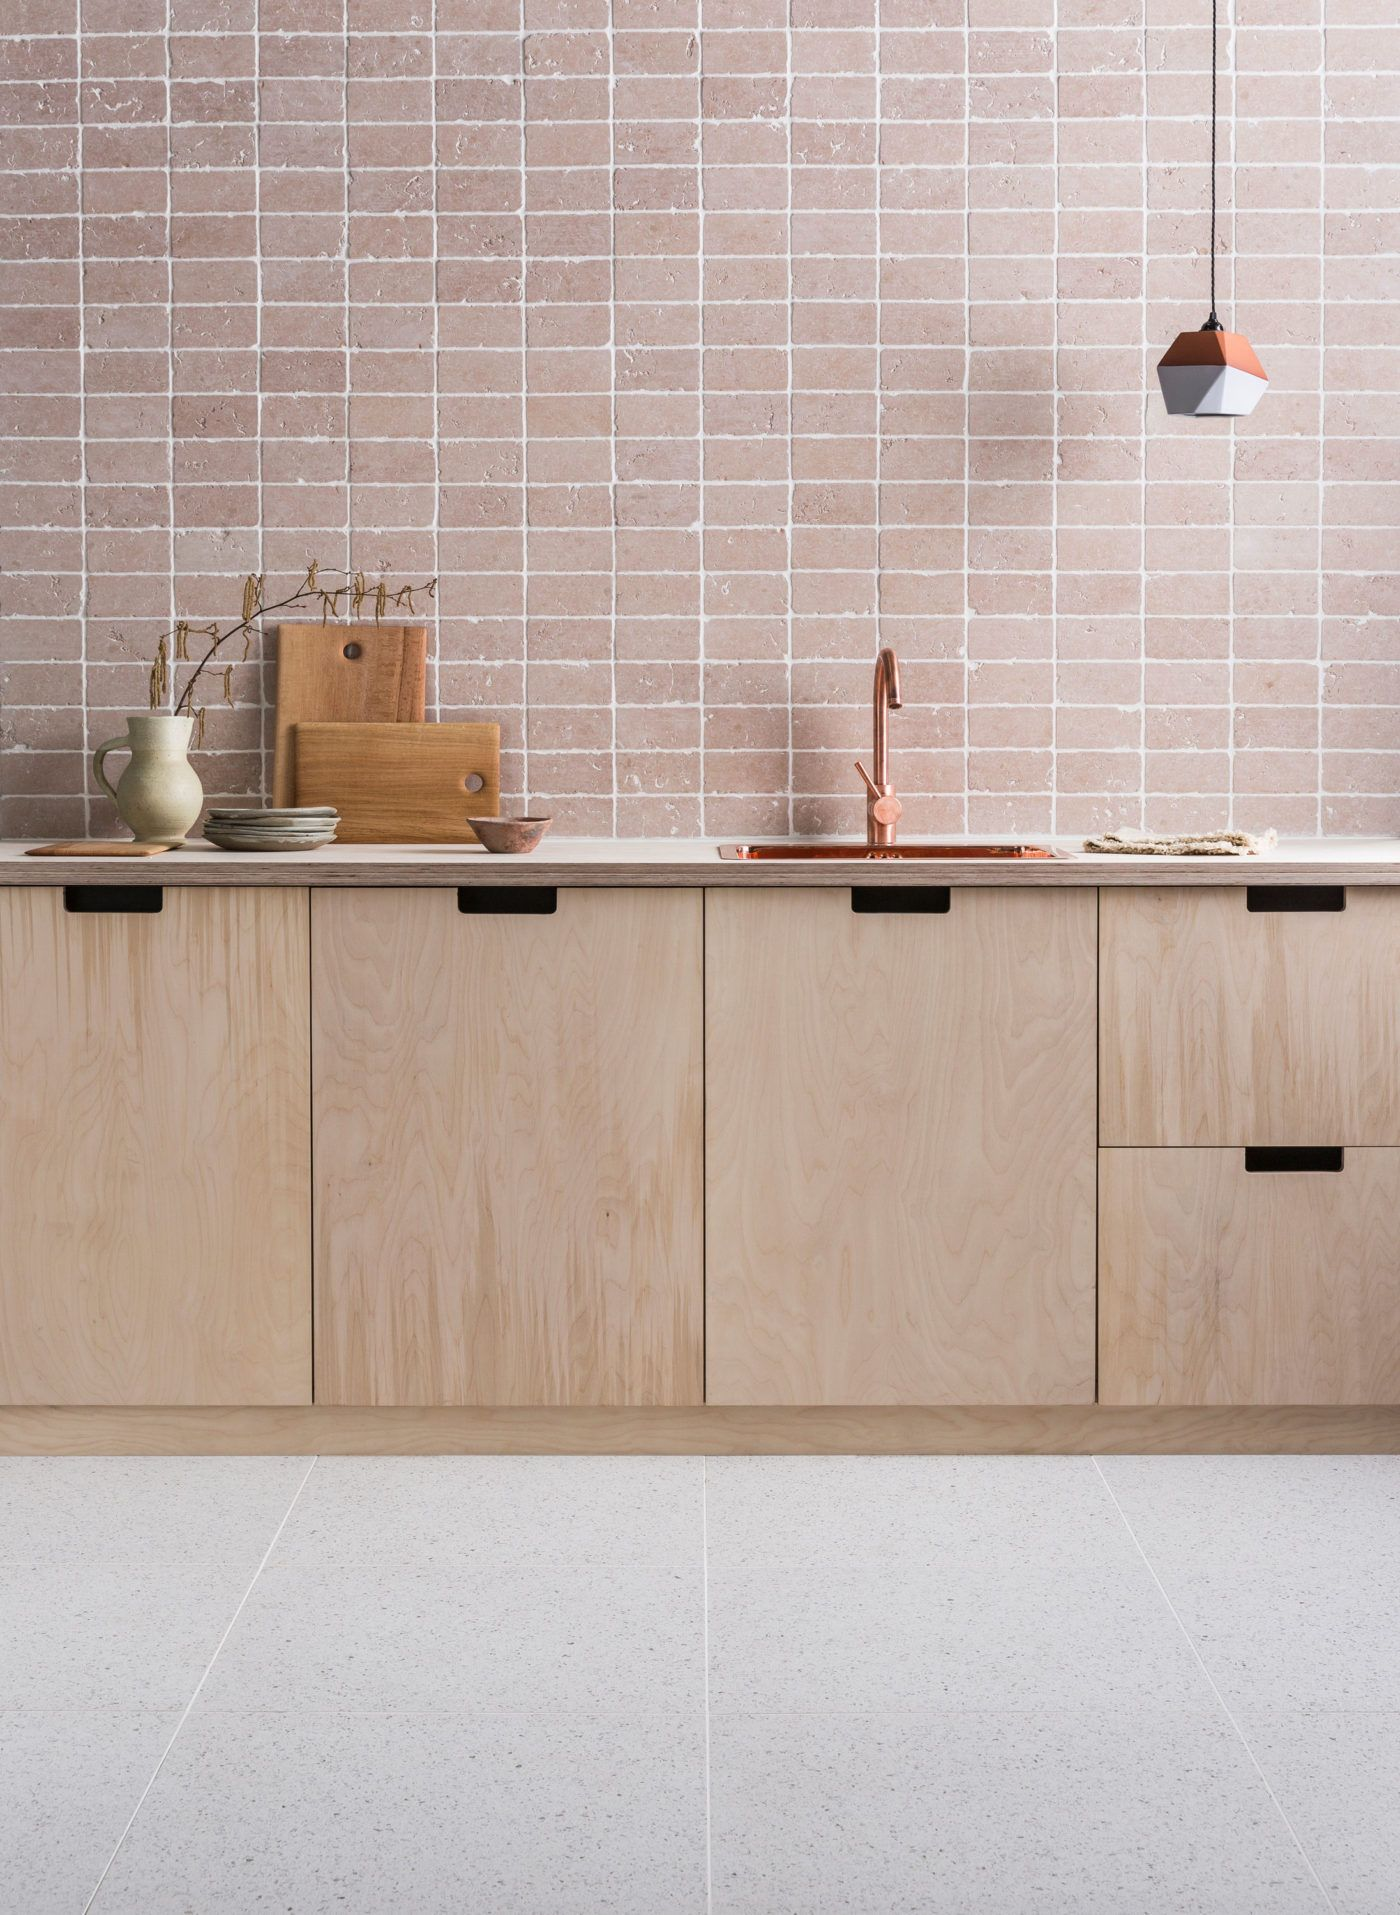 Photo of It's Official: These Are the 8 Modern Kitchen Backsplash Ideas That You Need to Try | Hunker